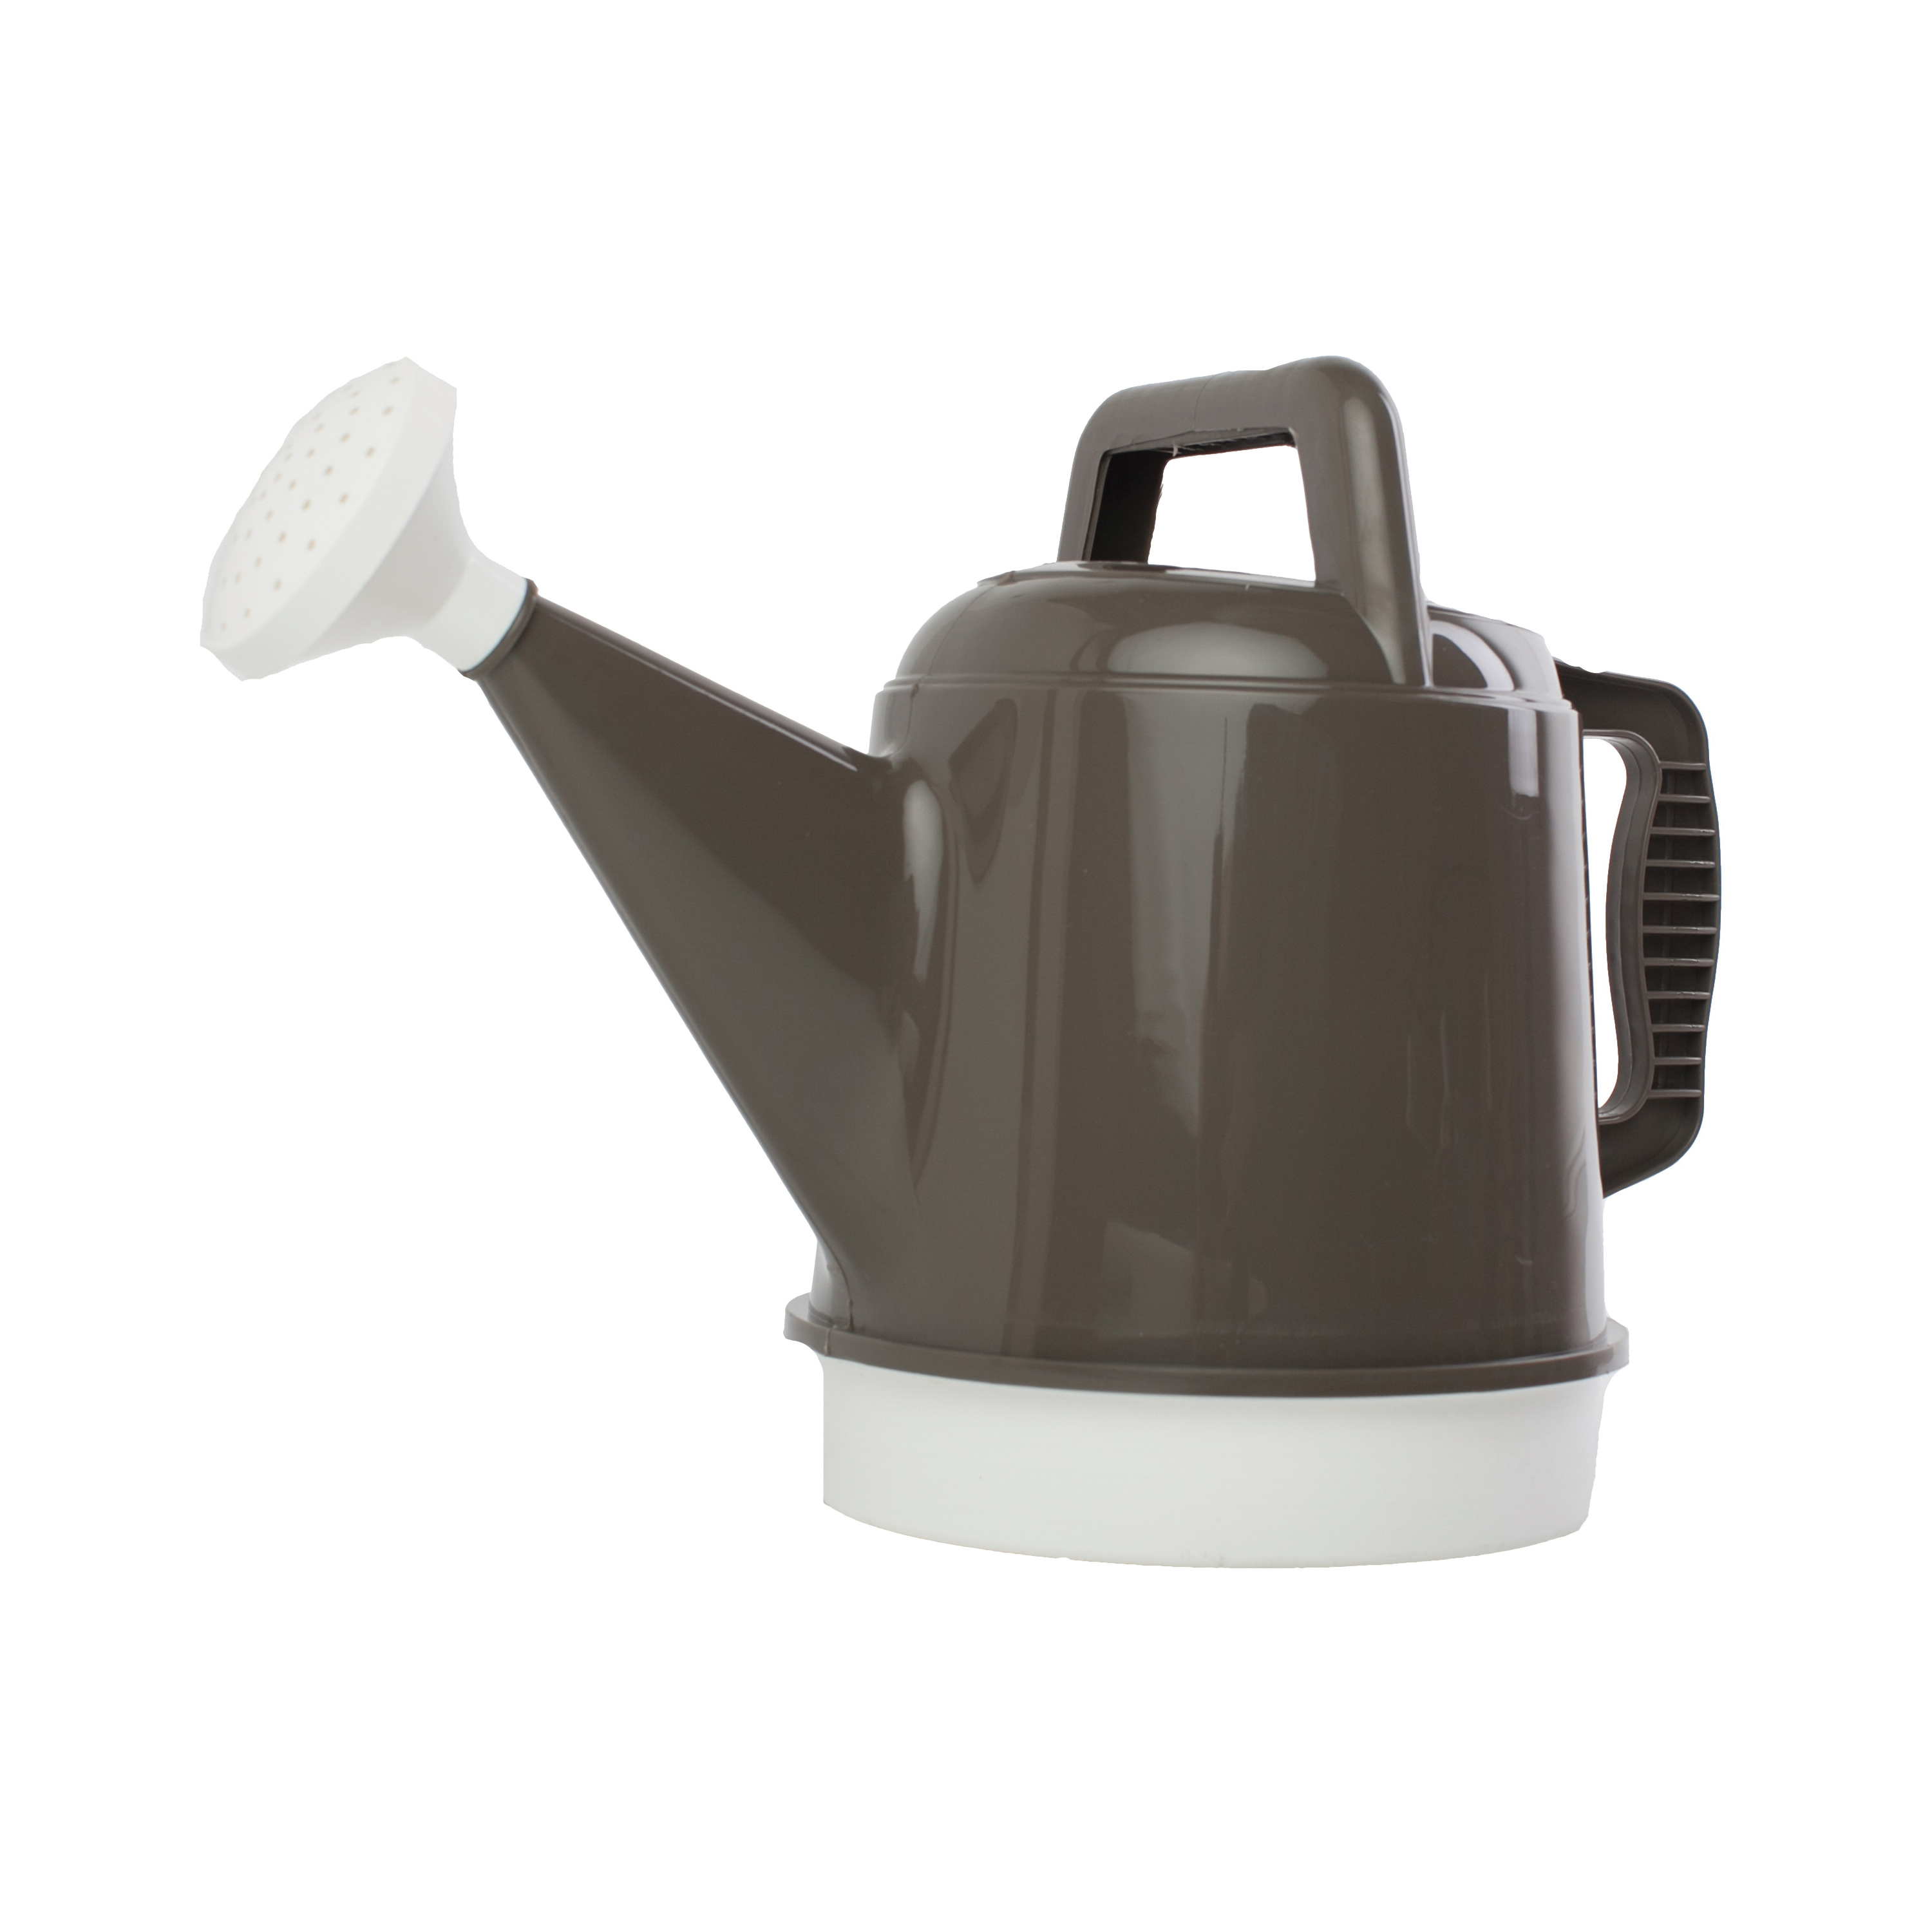 Picture of Bloem DWC2-60 Watering Can, 2.5 gal Can, Polypropylene, Peppercorn